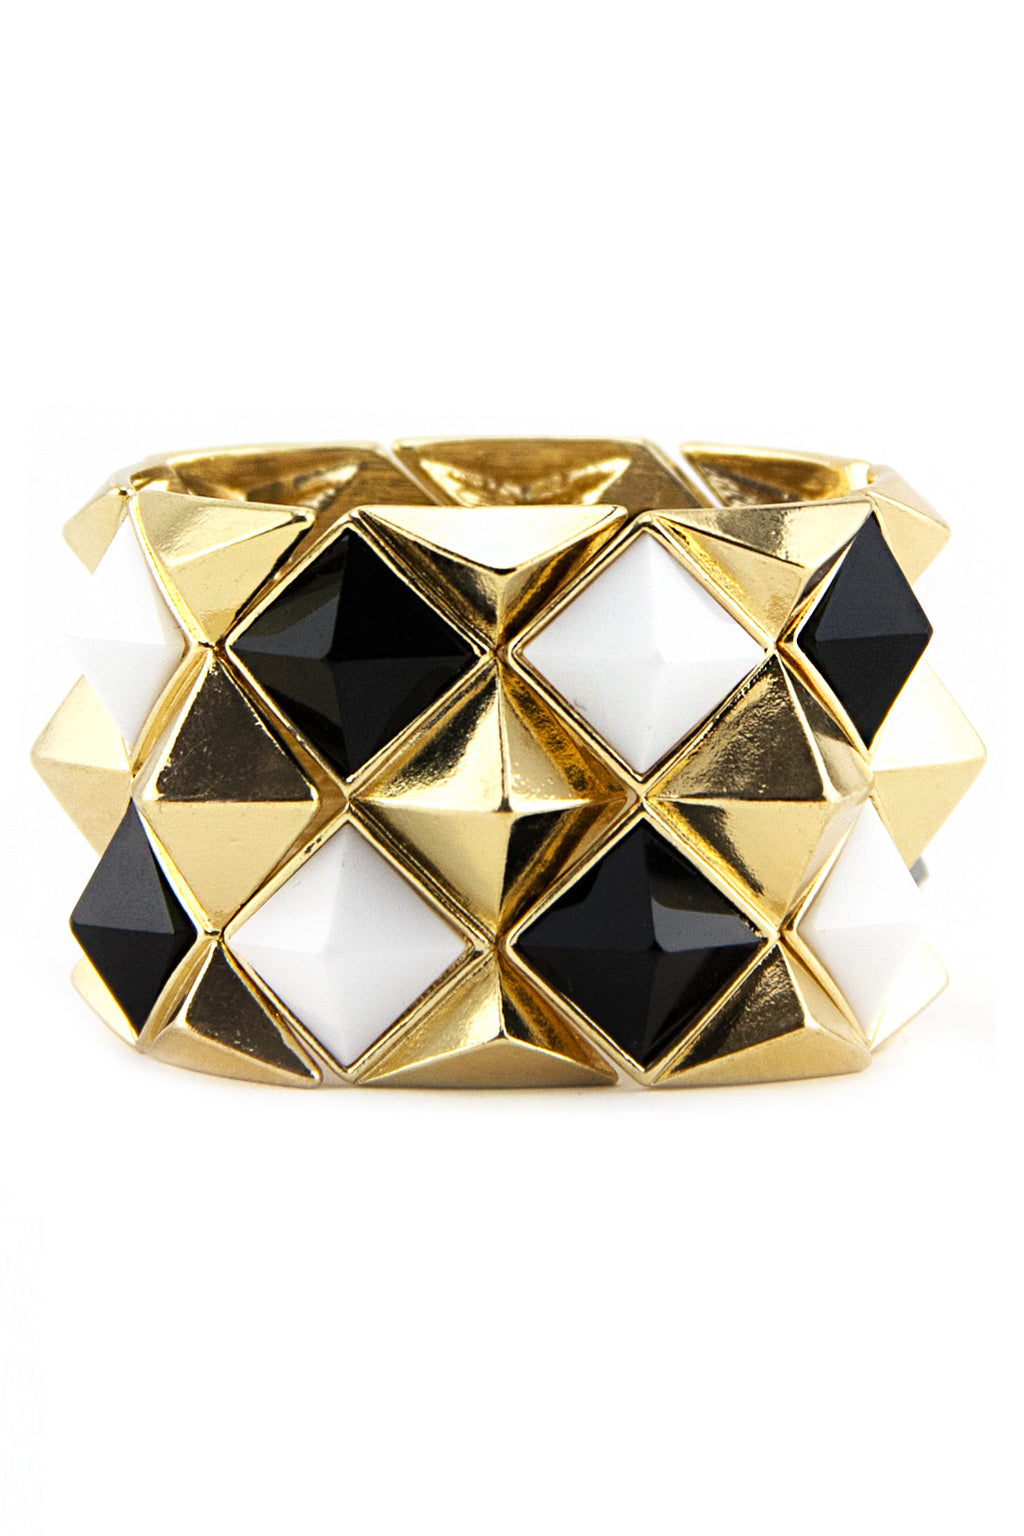 TRI COLOR PYRAMID CUFF - Haute & Rebellious